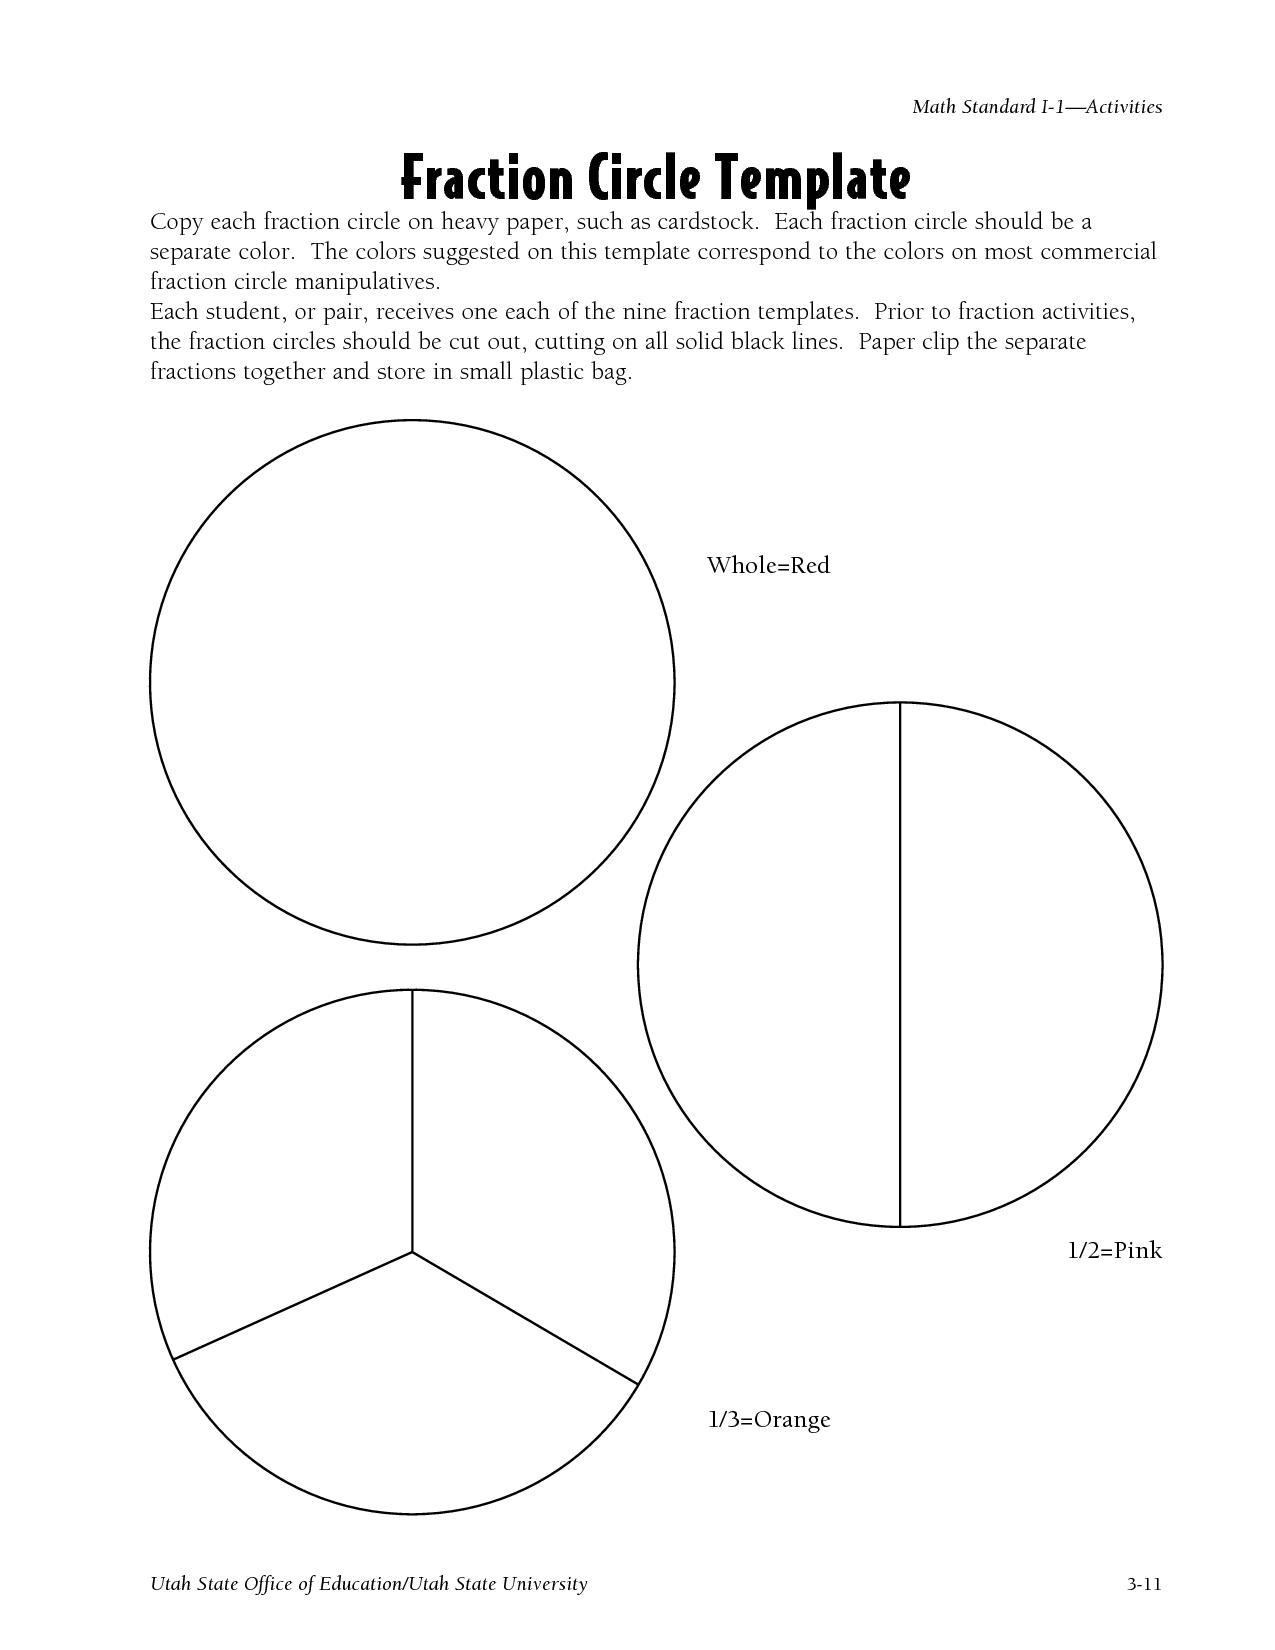 Fraction Papers | Circle Fraction Template - Pdf | Education - Free Printable Blank Fraction Circles